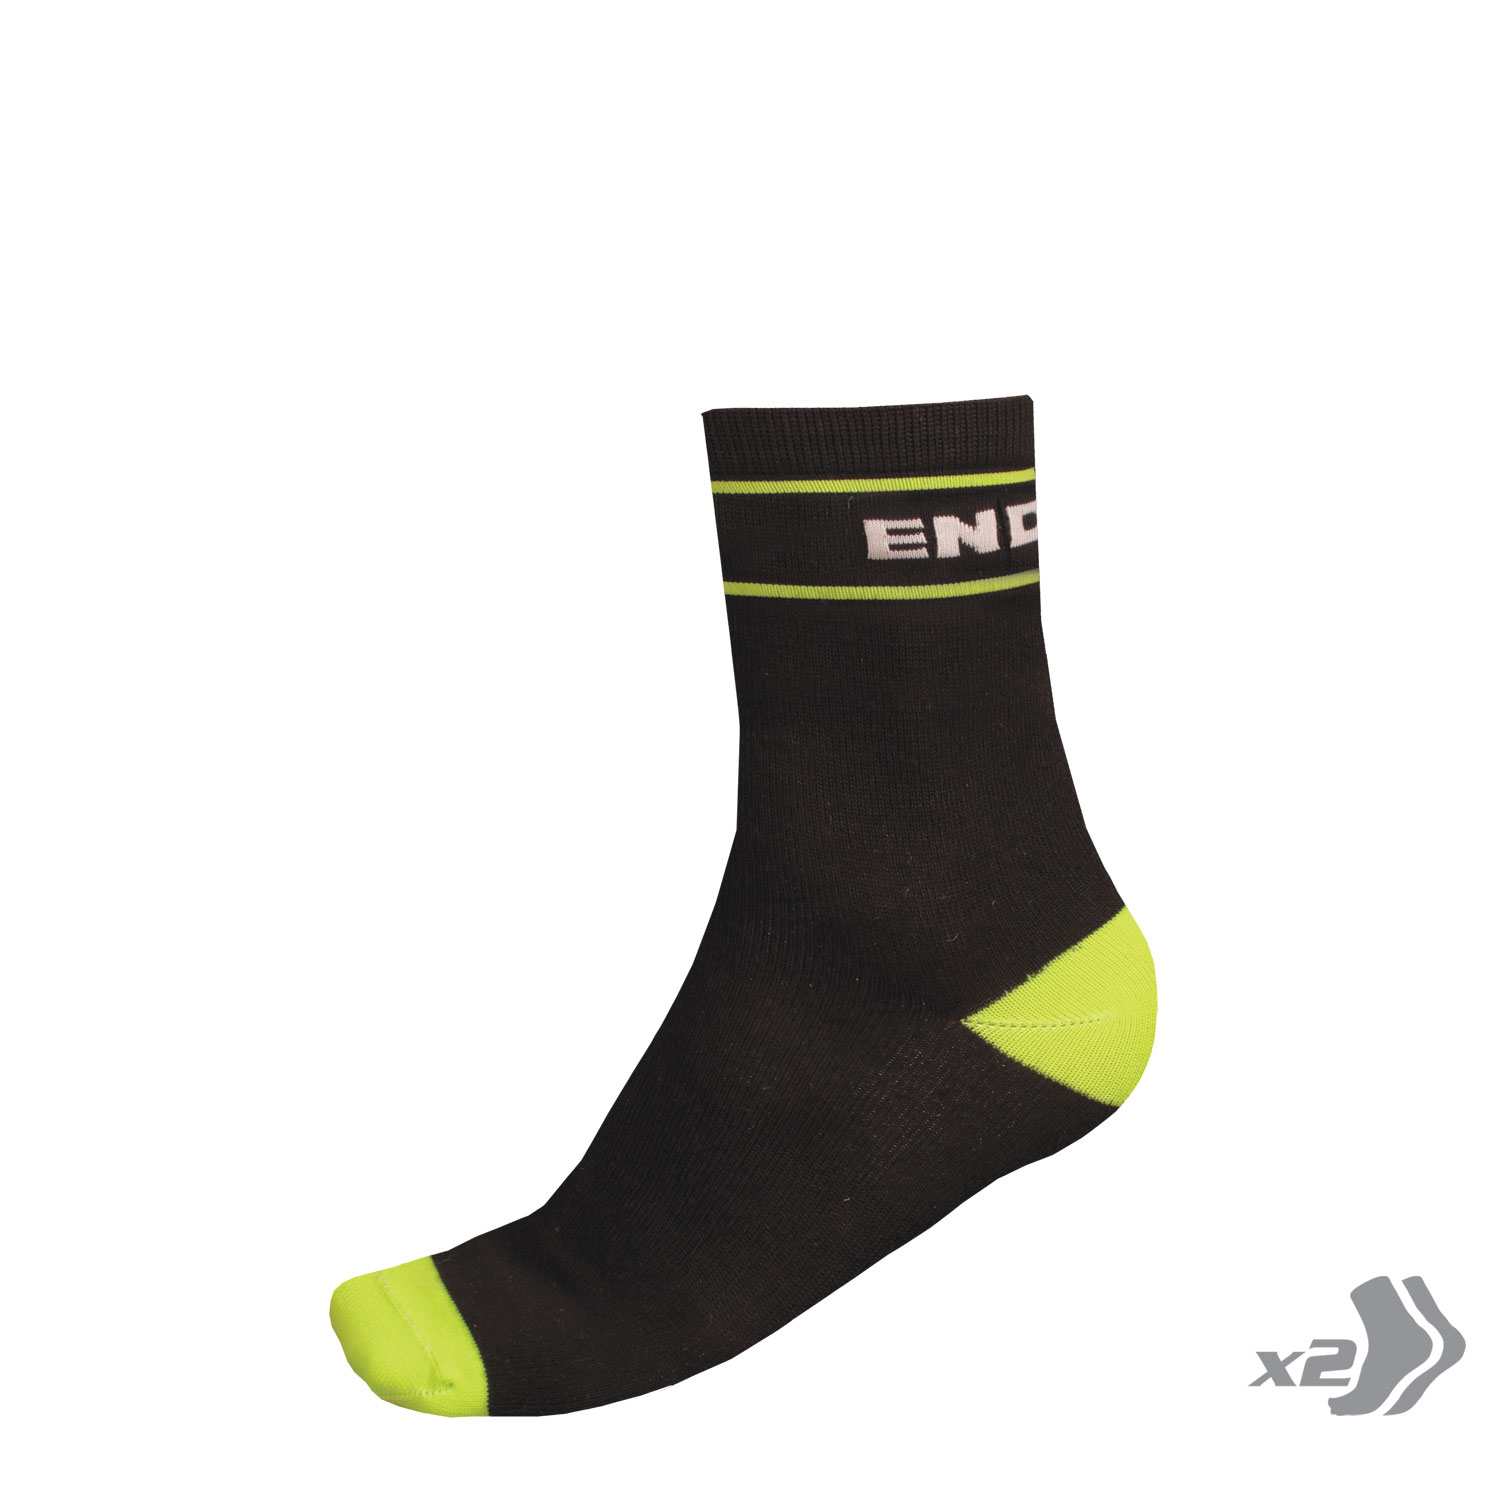 Retro Sock (Twin Pack) Black